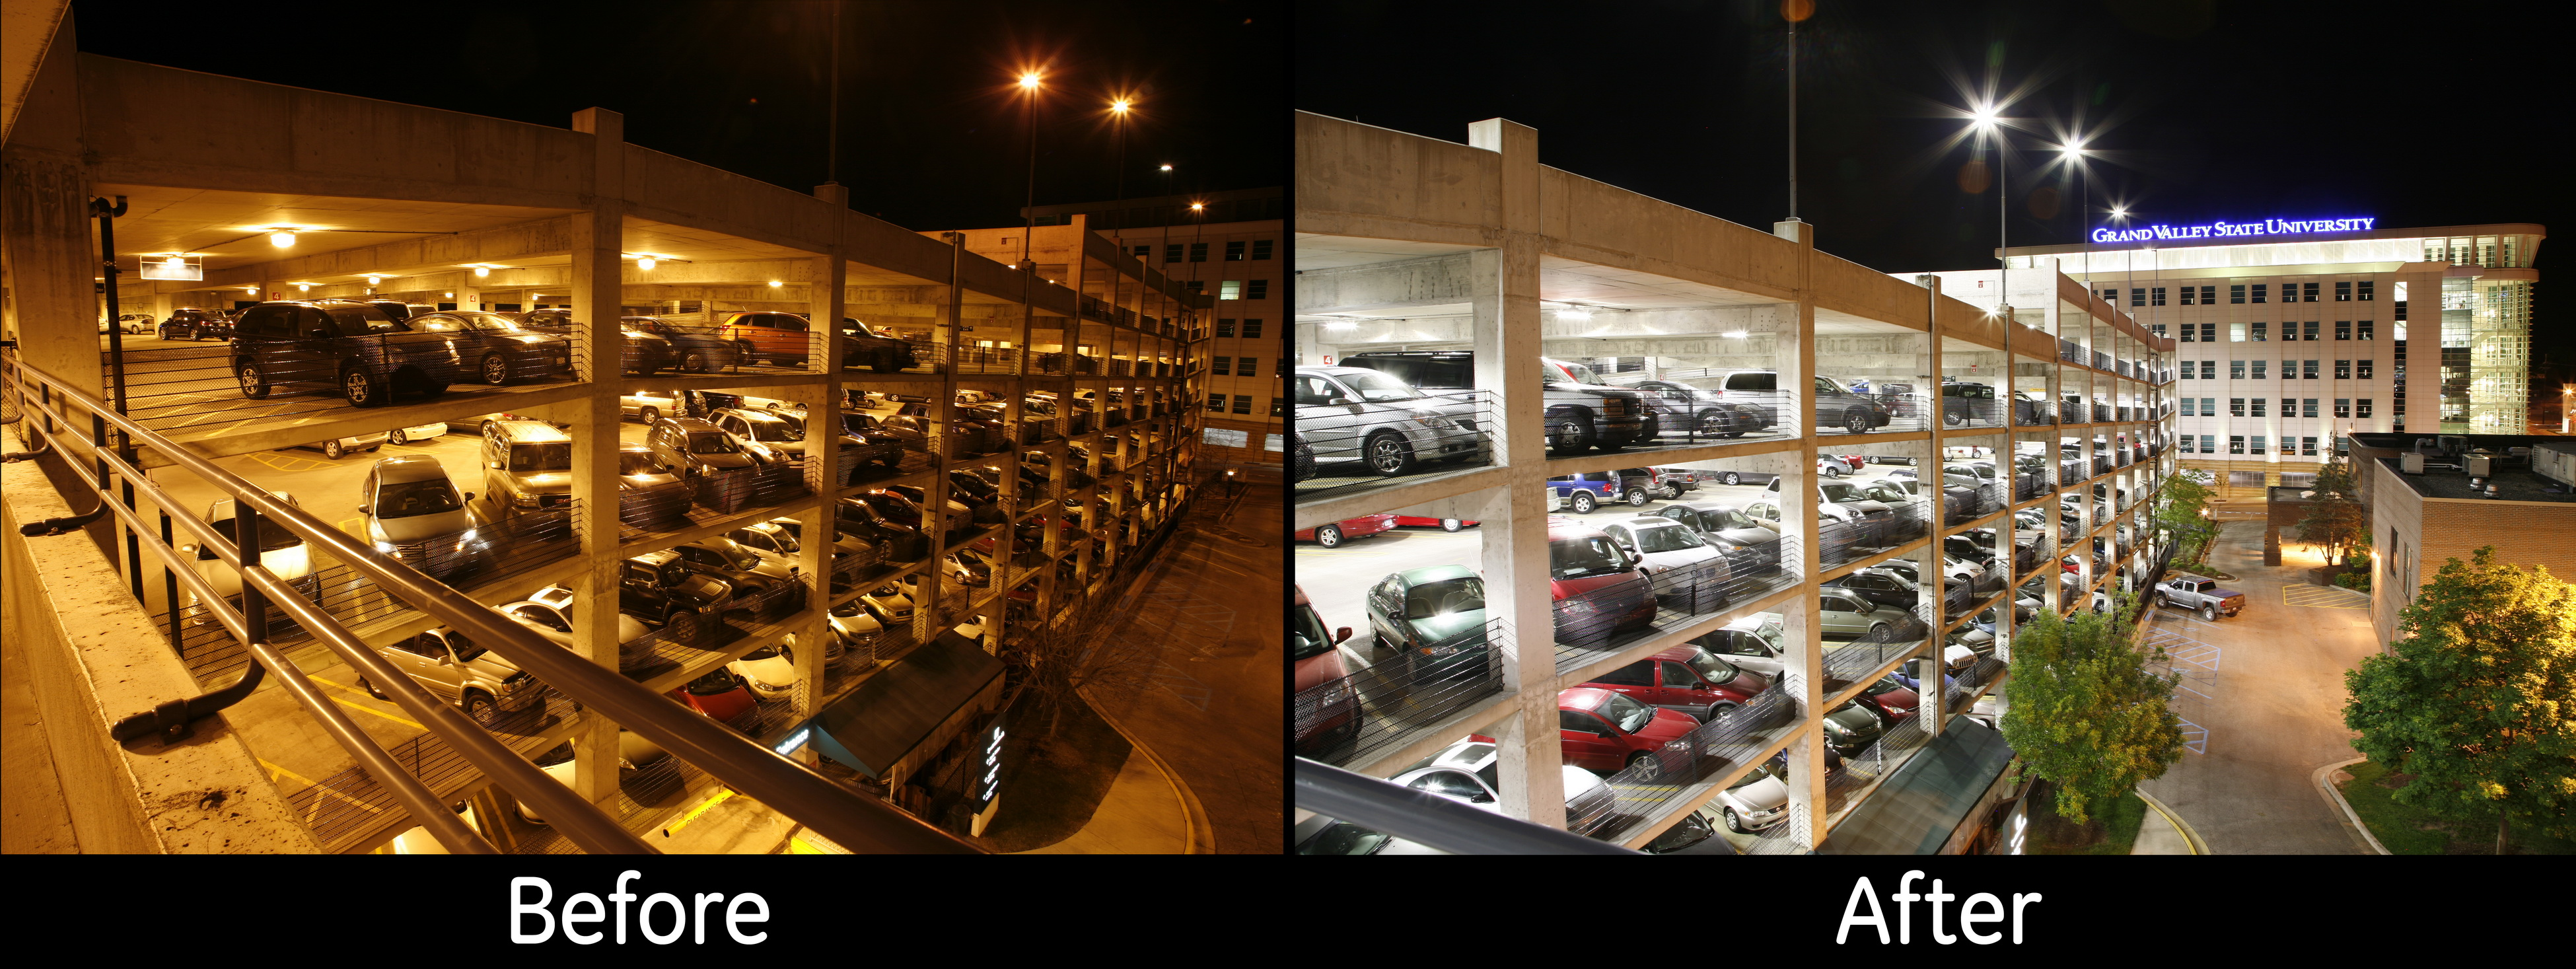 parking deck before and after canopy lighting